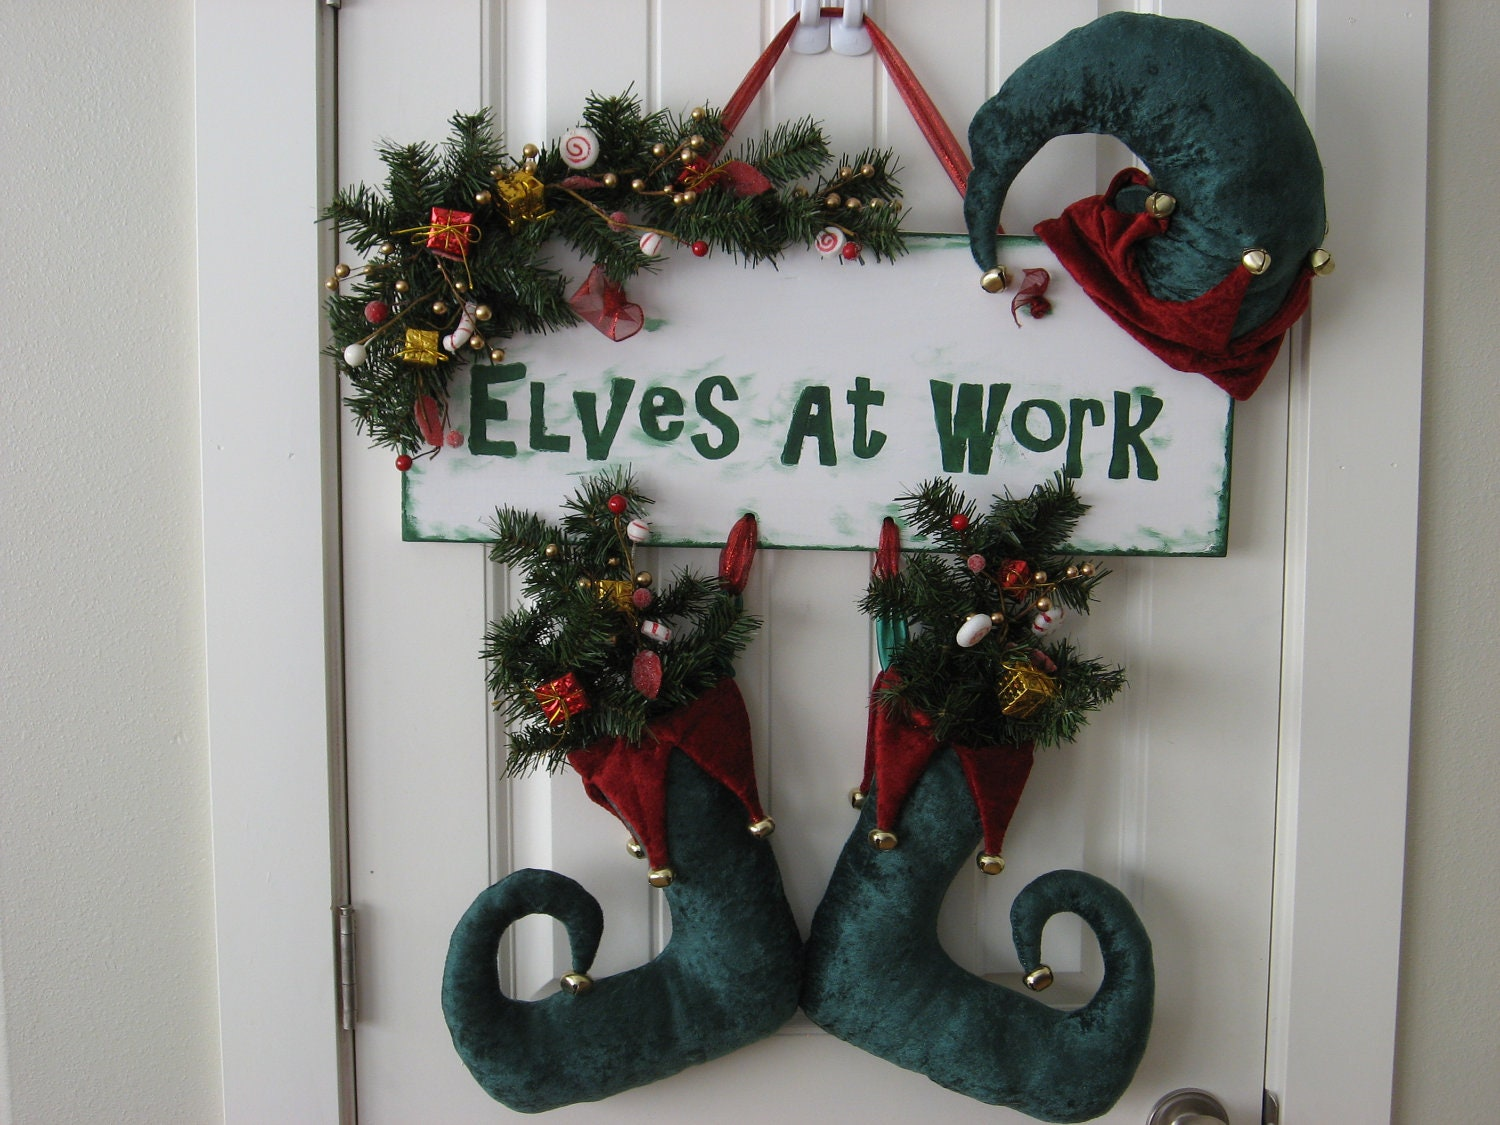 Handmade Christmas Decoration Door Hanger Elf Hat and Boots. Elves At Work